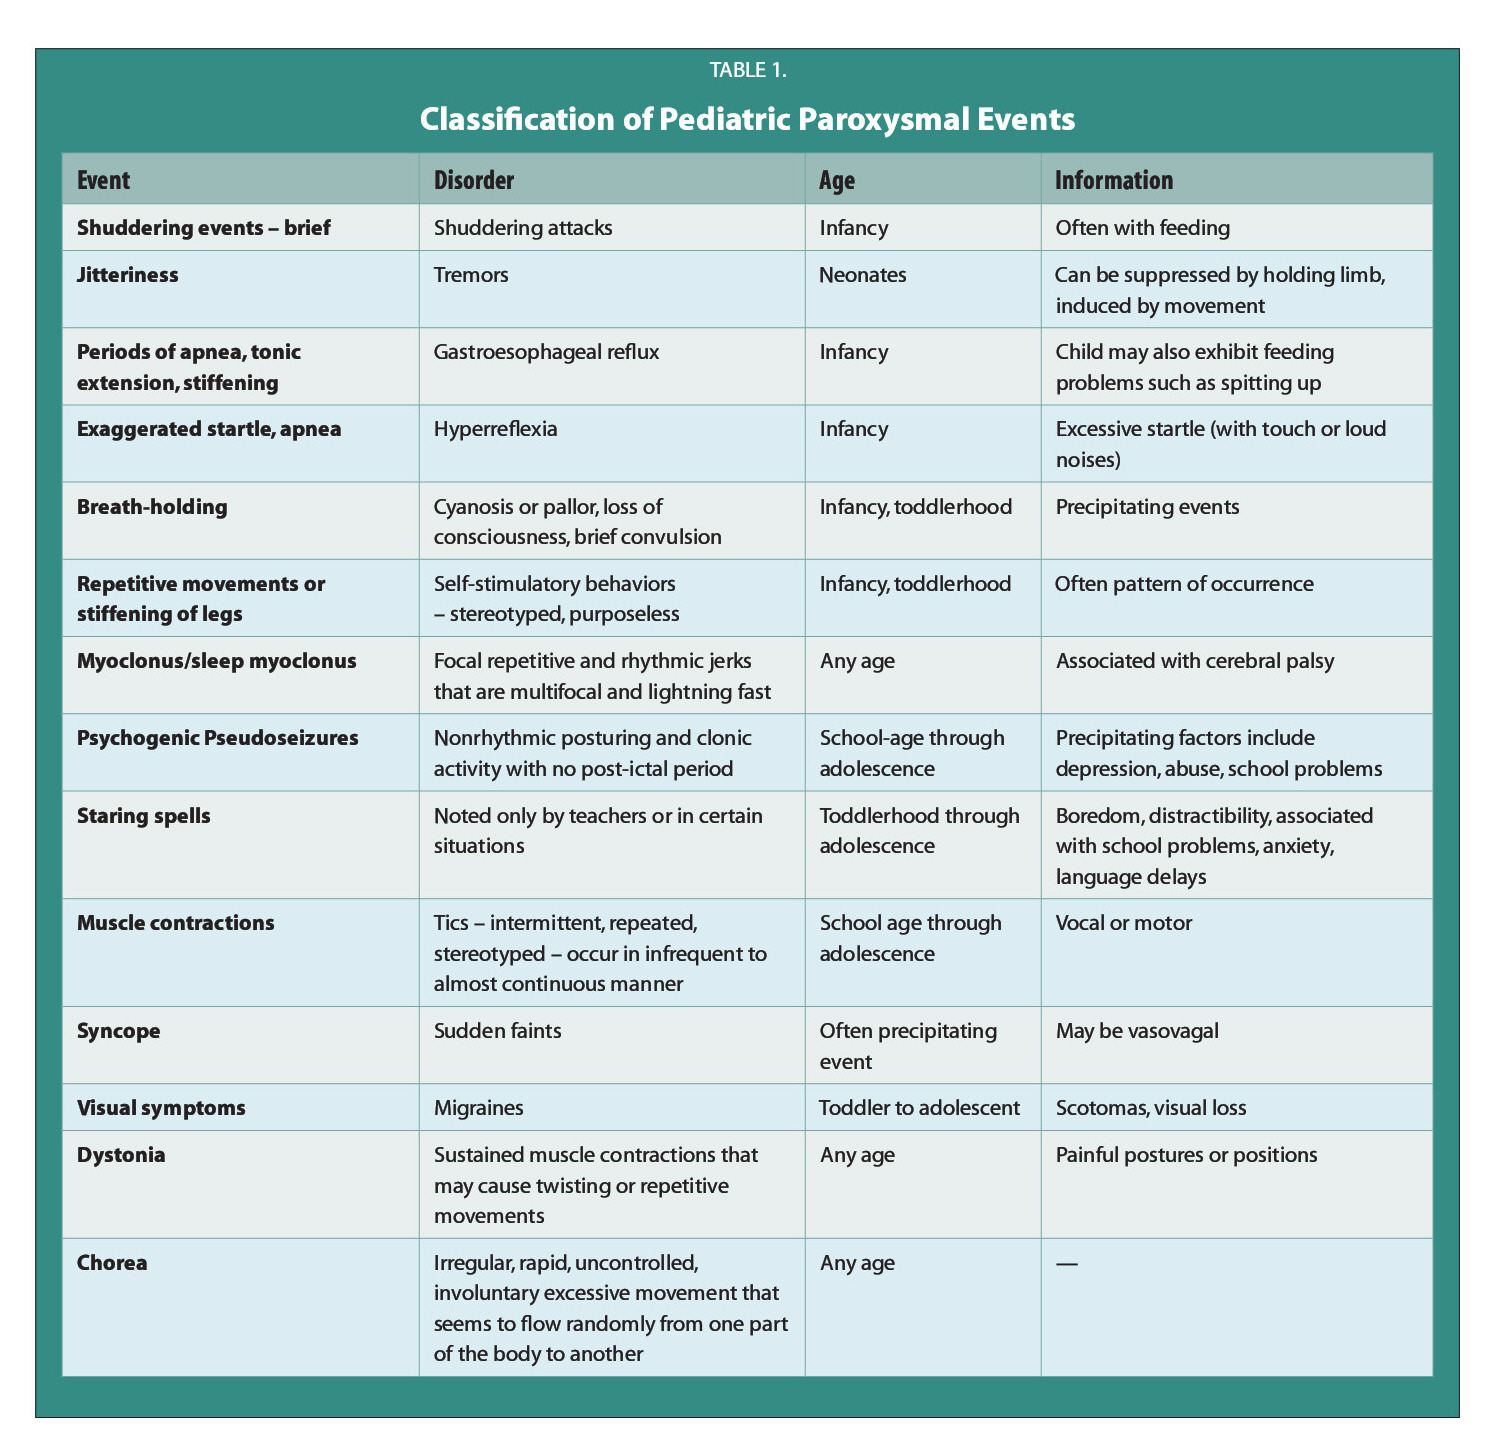 TABLE 1.Classification of Pediatric Paroxysmal Events